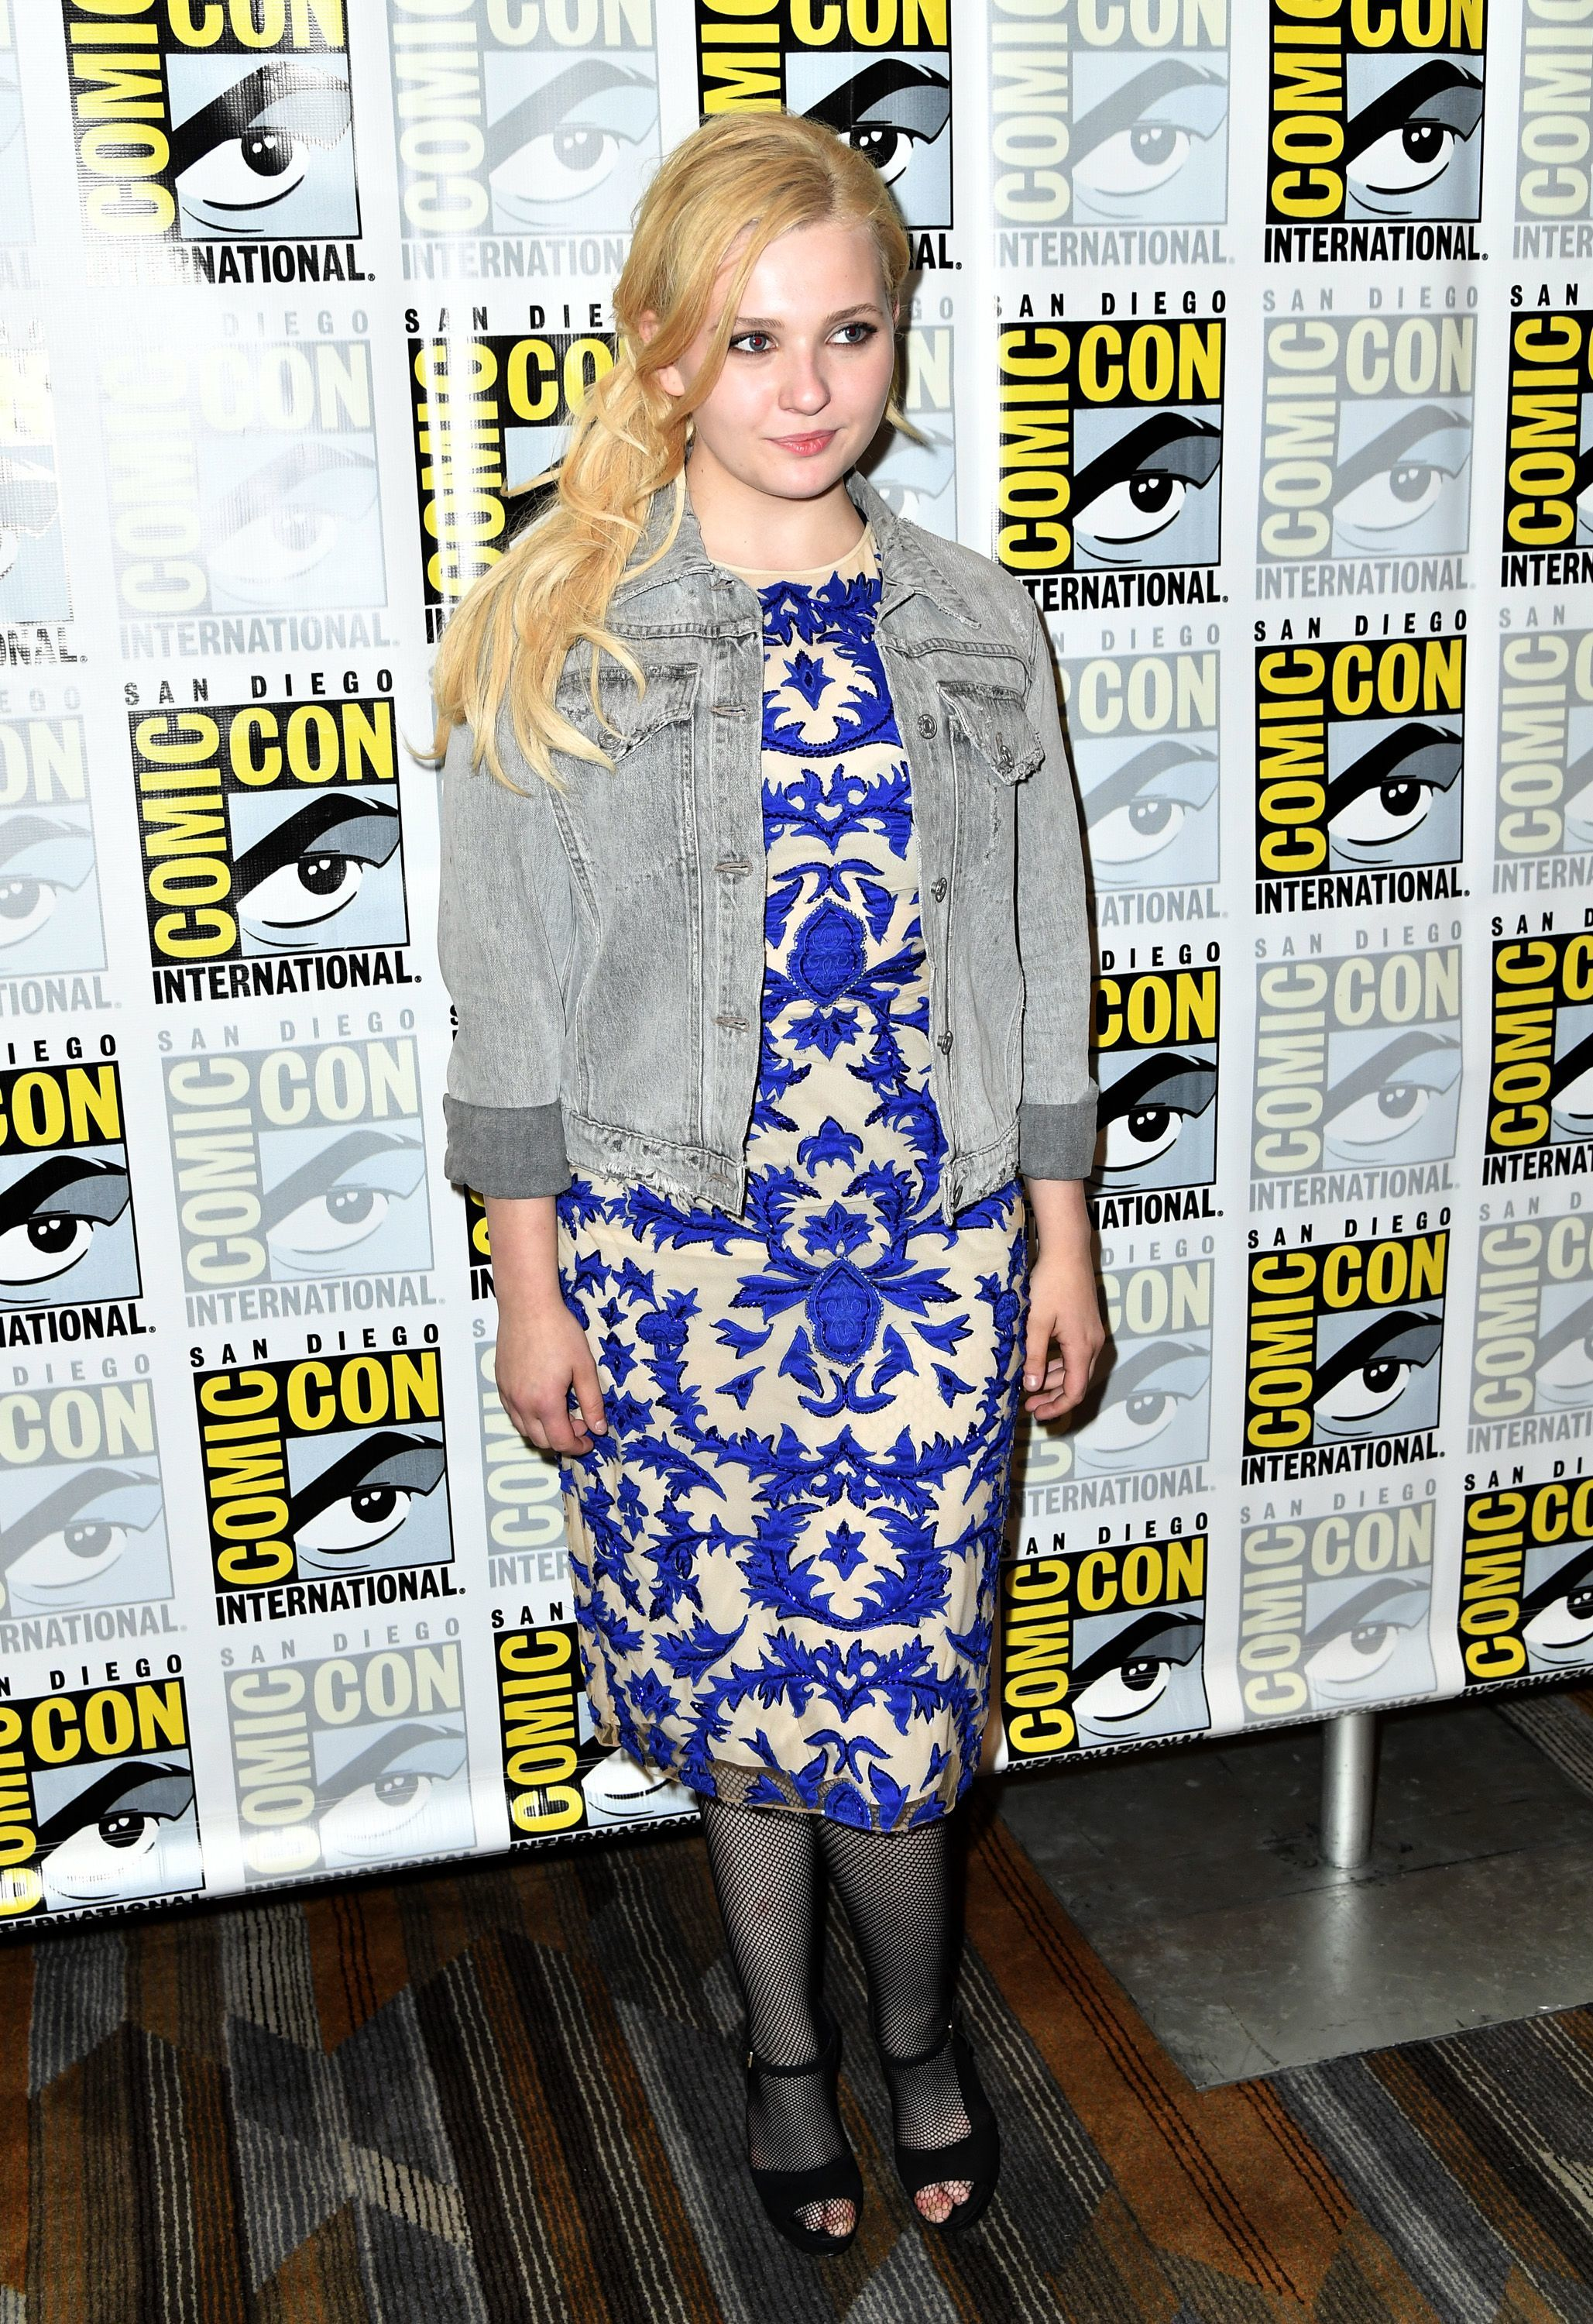 Abigail Breslin works on her cat lady persona